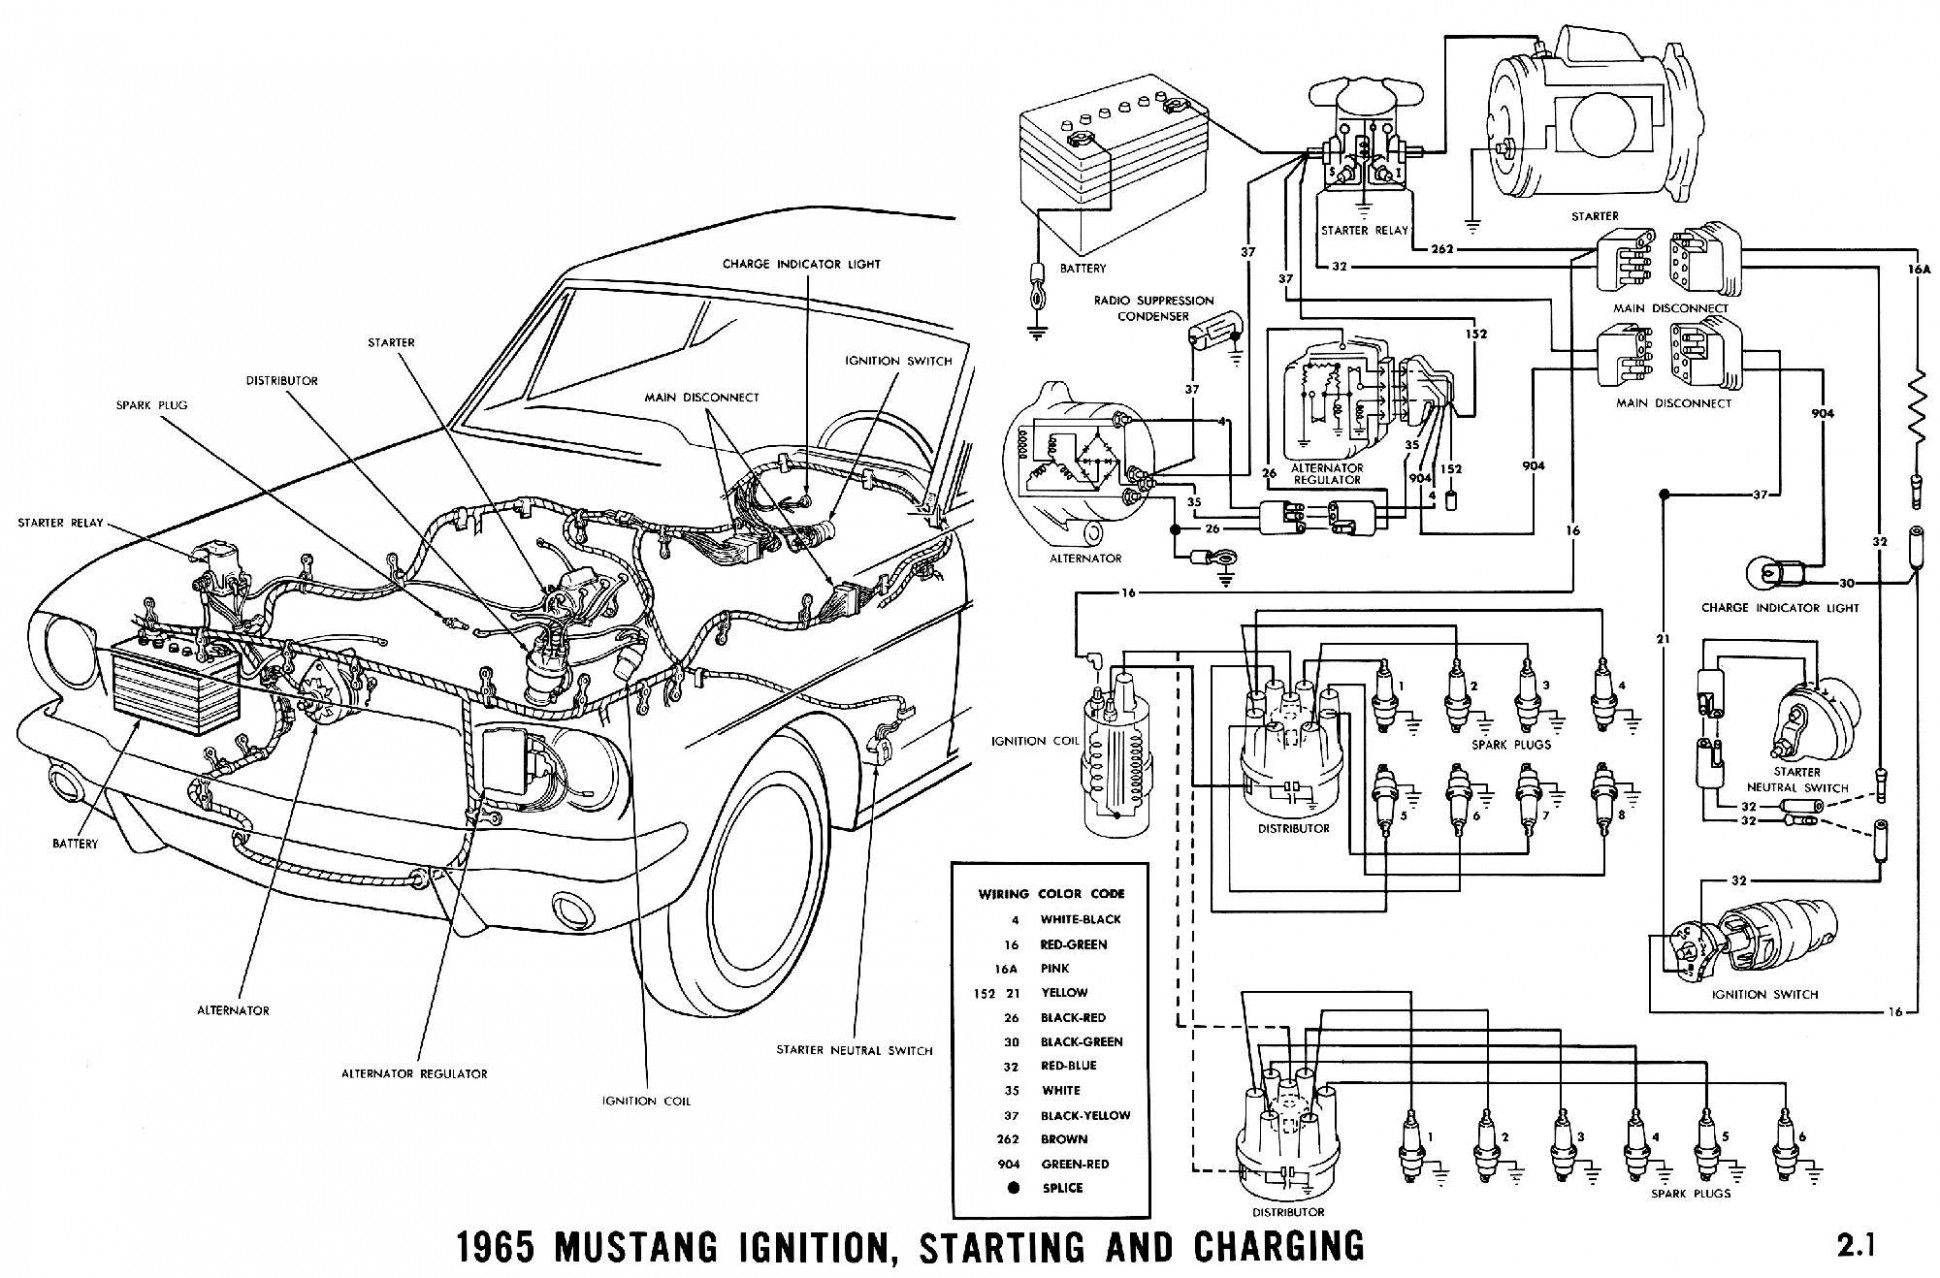 Parts Of An Engine Diagram Pdf di 2020